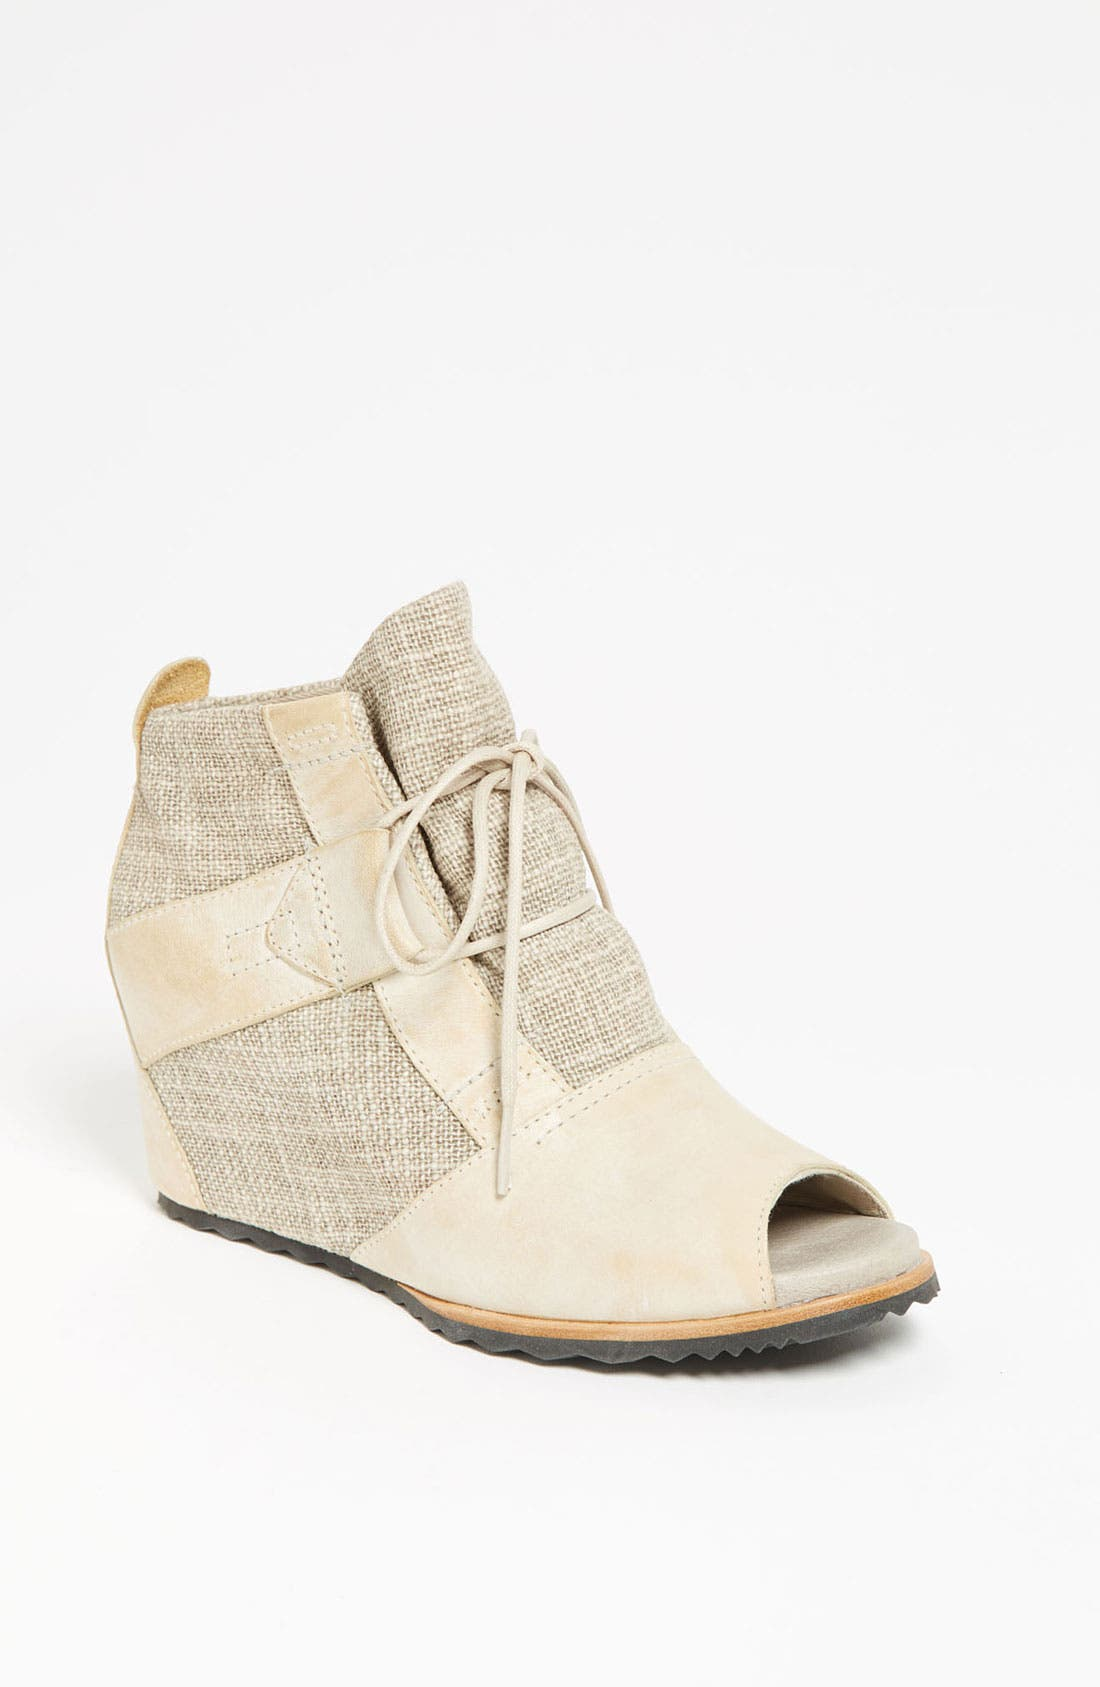 Alternate Image 1 Selected - Sorel 'Lake Wedge' Bootie